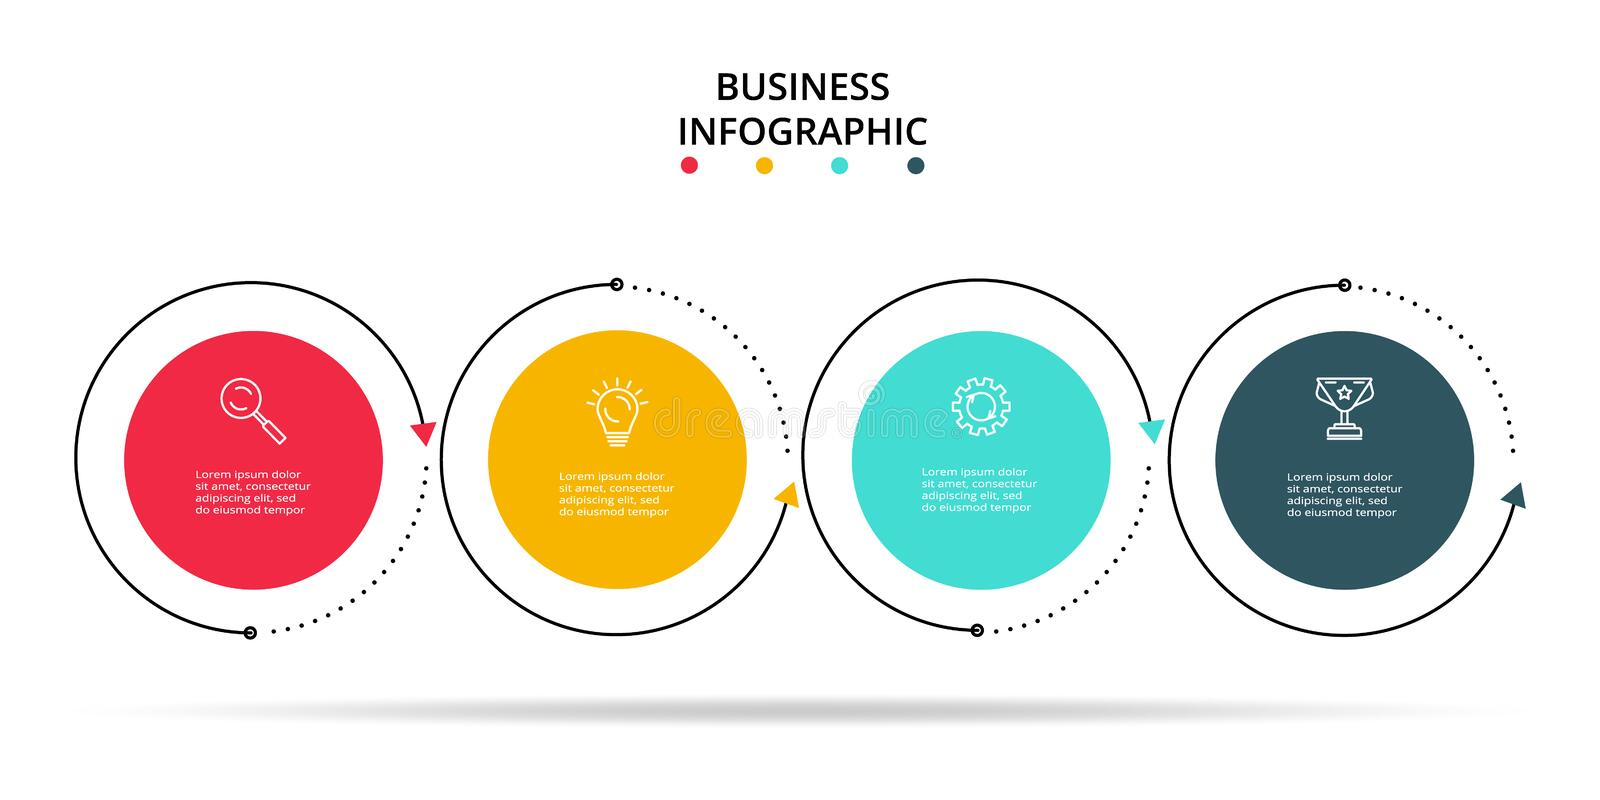 Creative concept for infographic with 4 steps, options, parts or processes. Business data visualization royalty free illustration